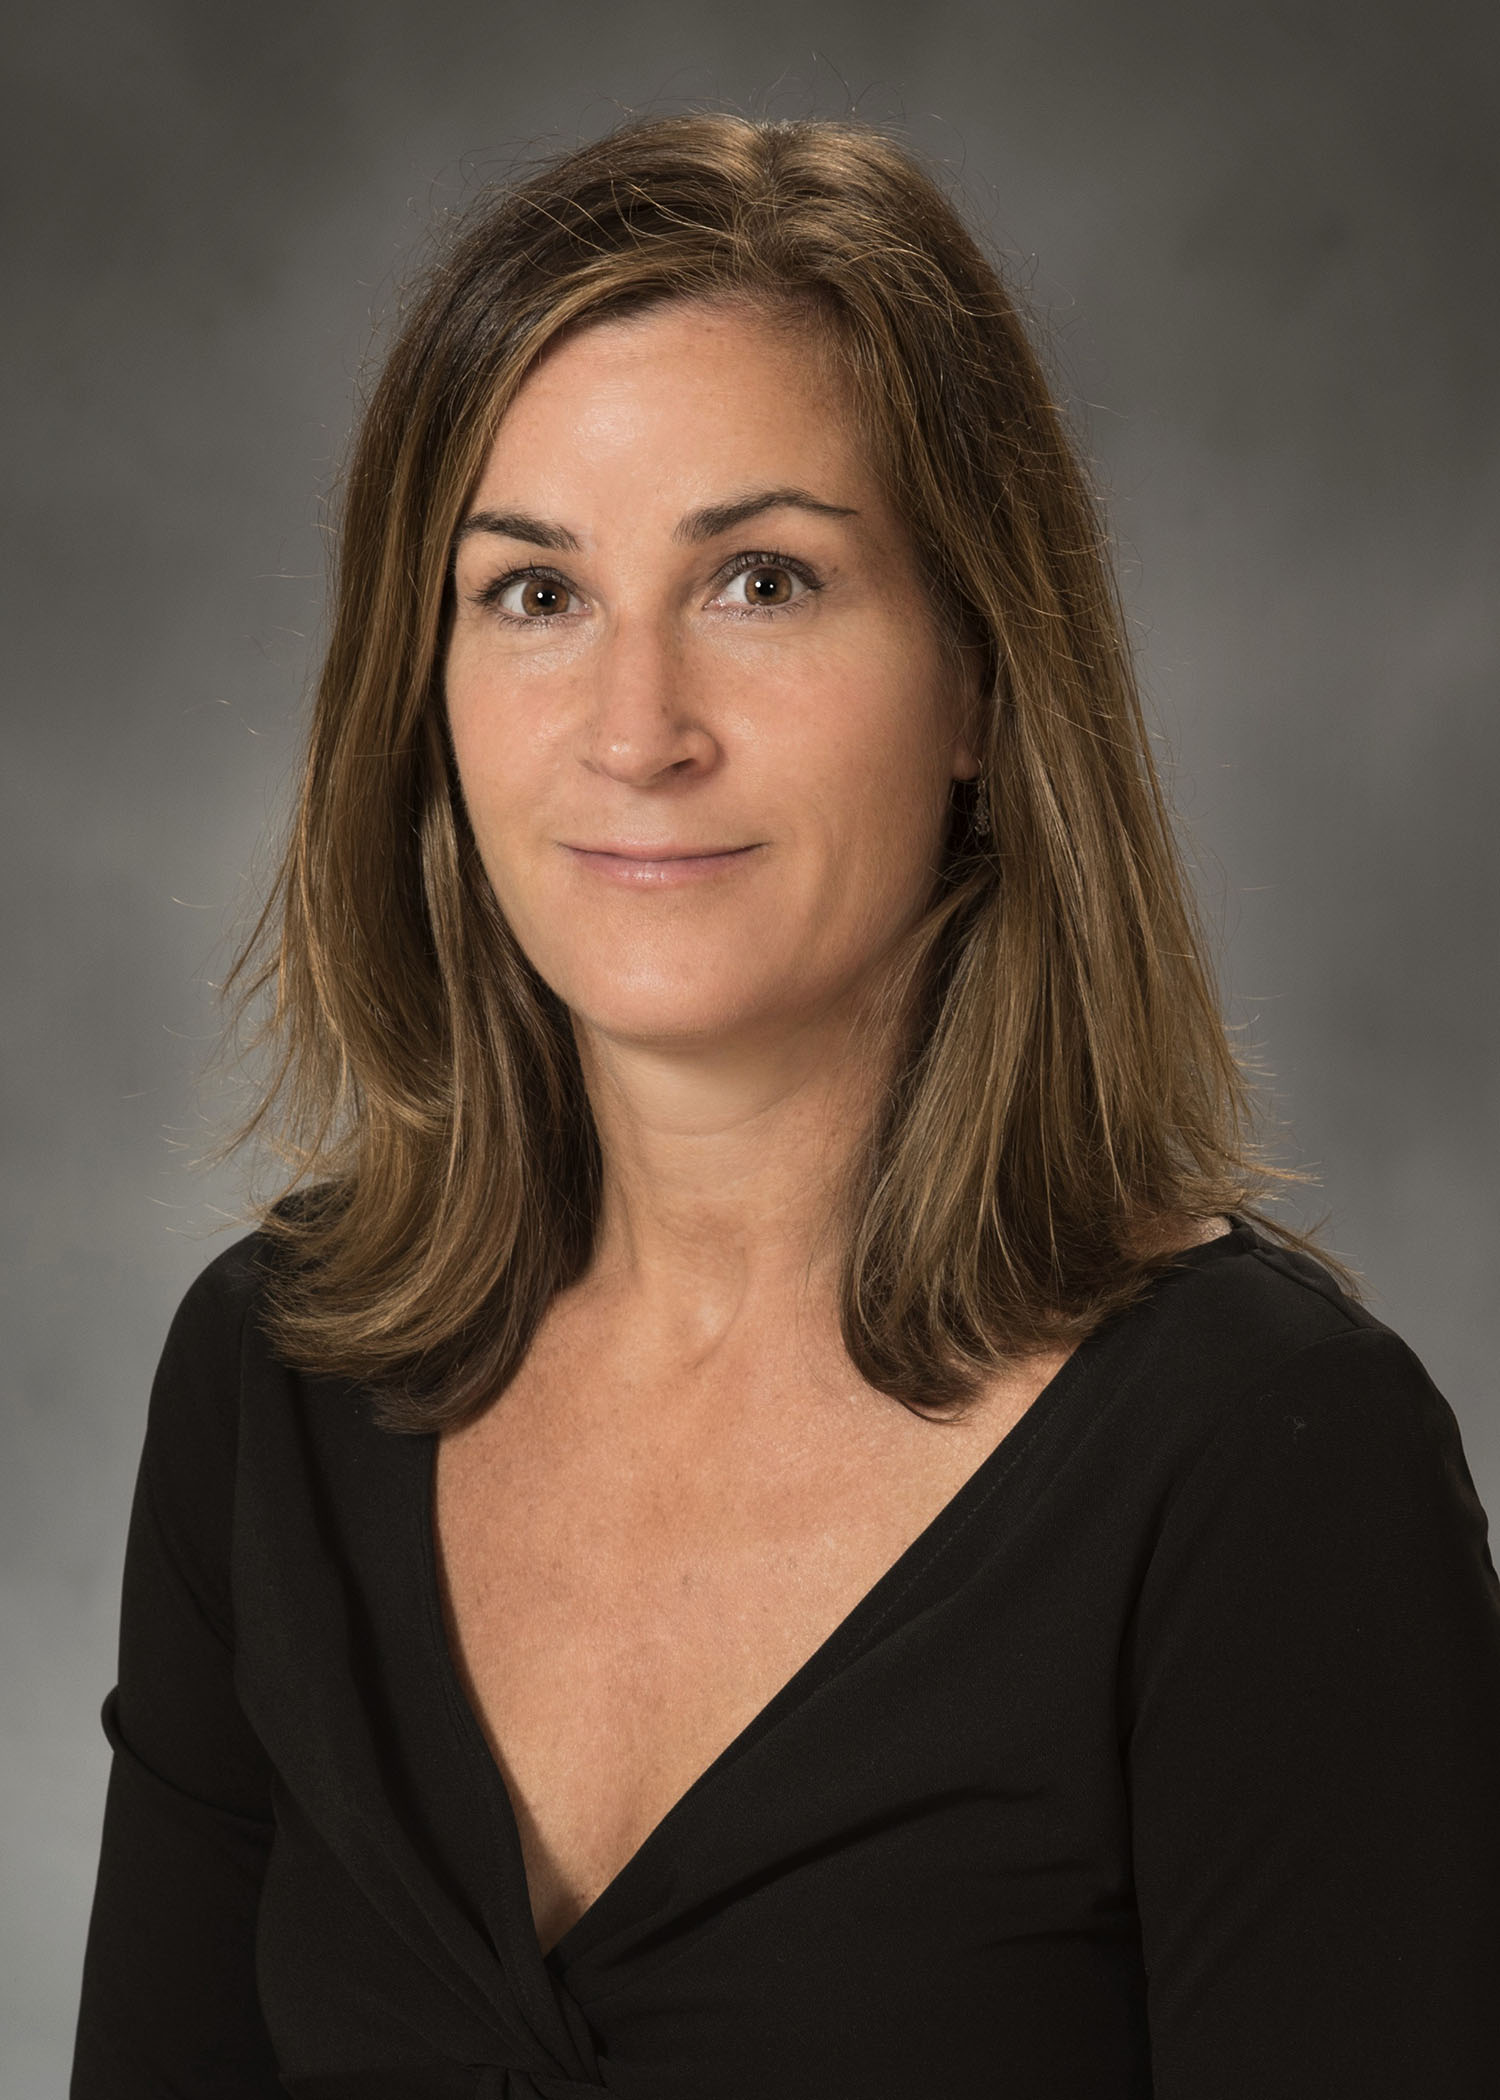 Photo of Mary Andreae MS, RD, LDN, DPD Program Director & Assistant Professor